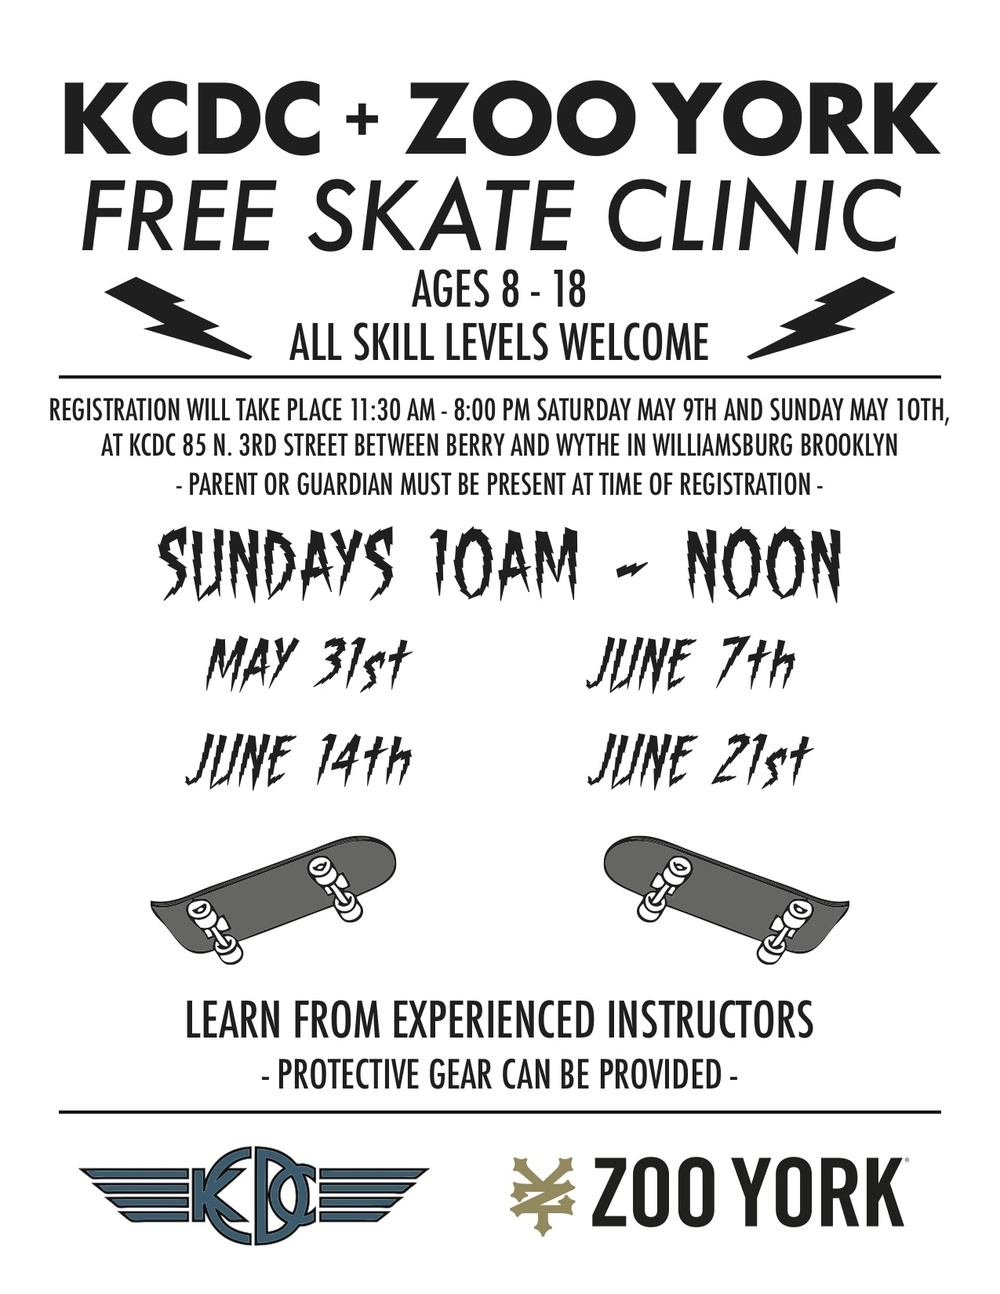 Registration is in person only at Kcdc Skateshop. Parent or Guardian must be present at time of registration. Registration is from 11:30am-8pm this Saturday (5/9) and Sunday (5/10)